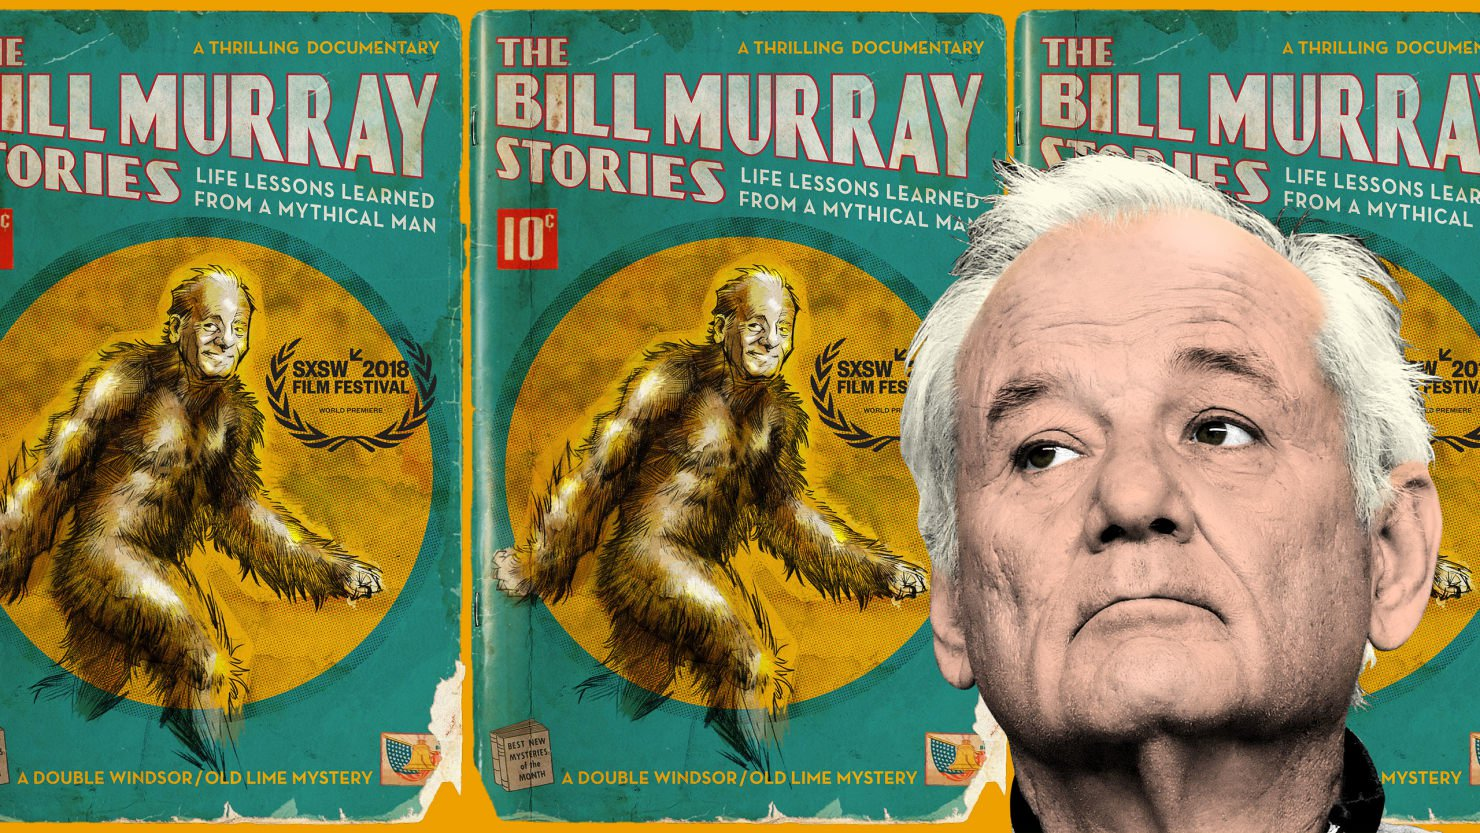 02_bill_murray_stories.jpg